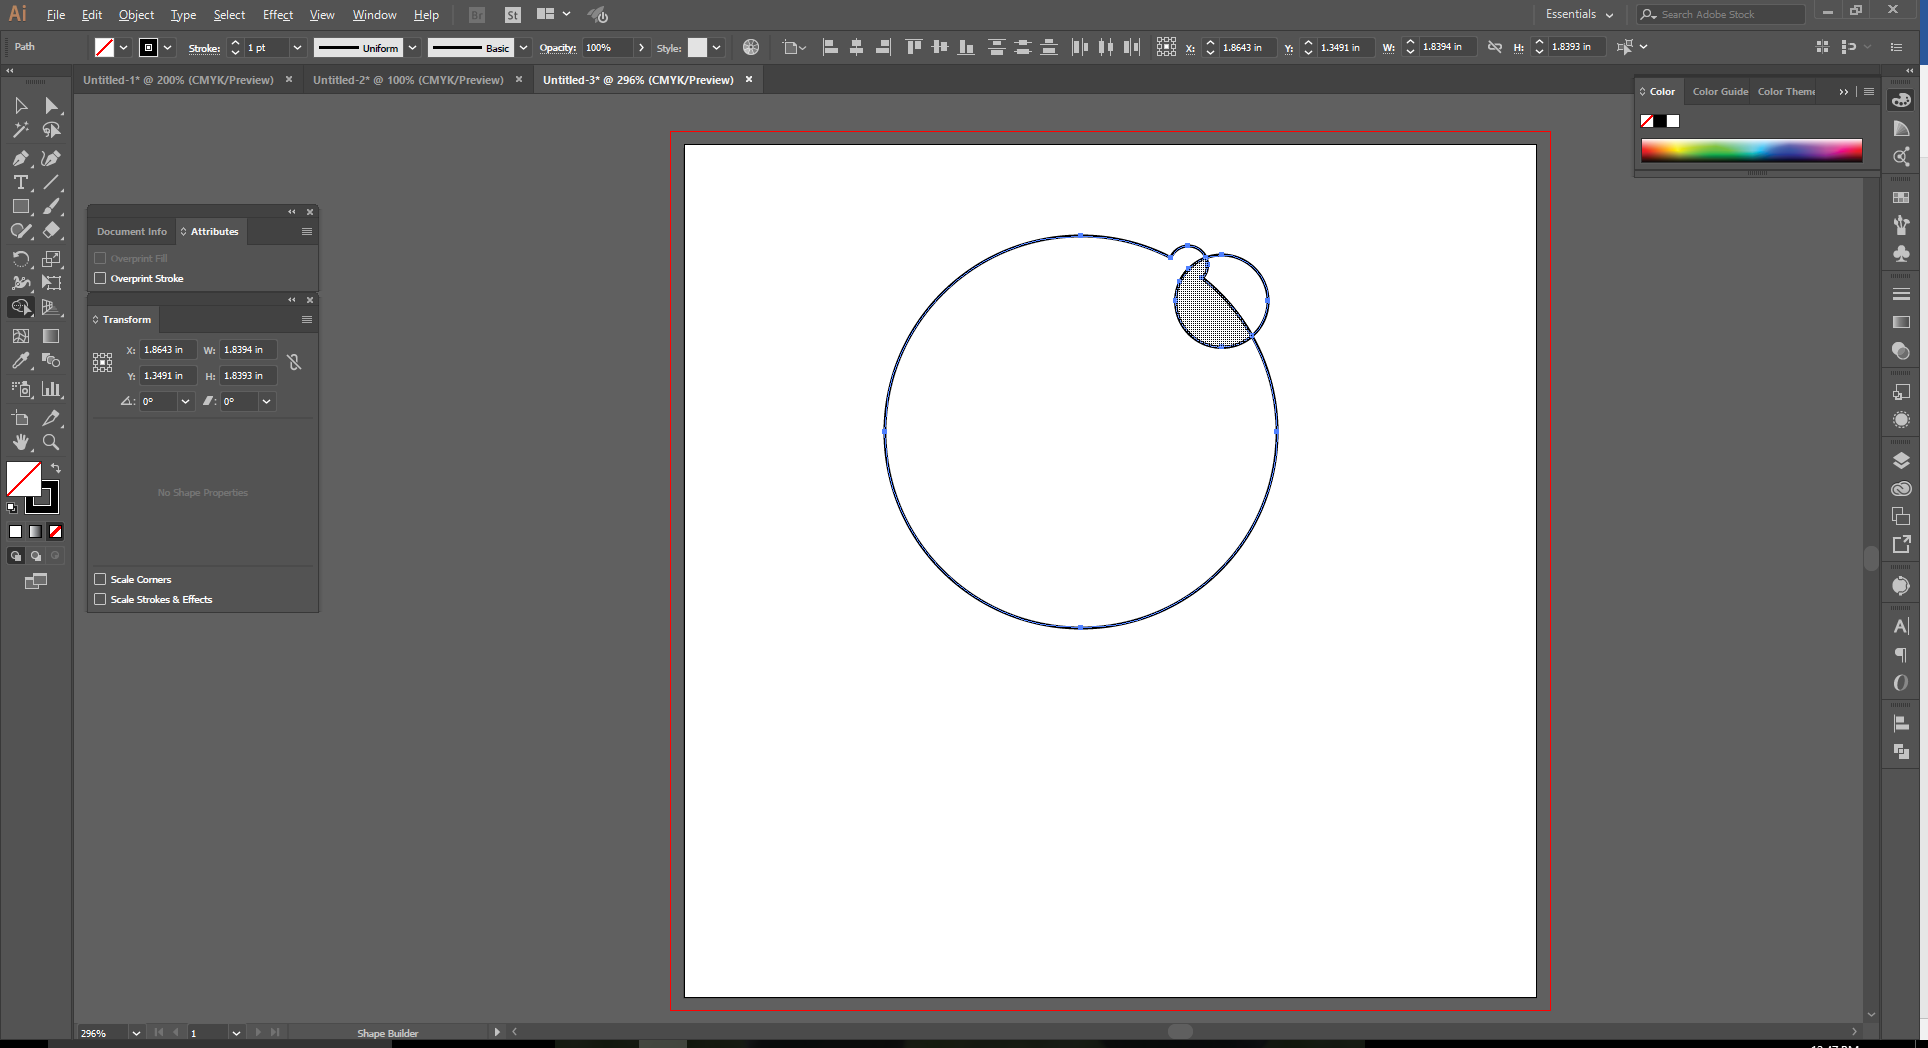 How to Use the Shape Builder Tool in Adobe Illustrator - 7